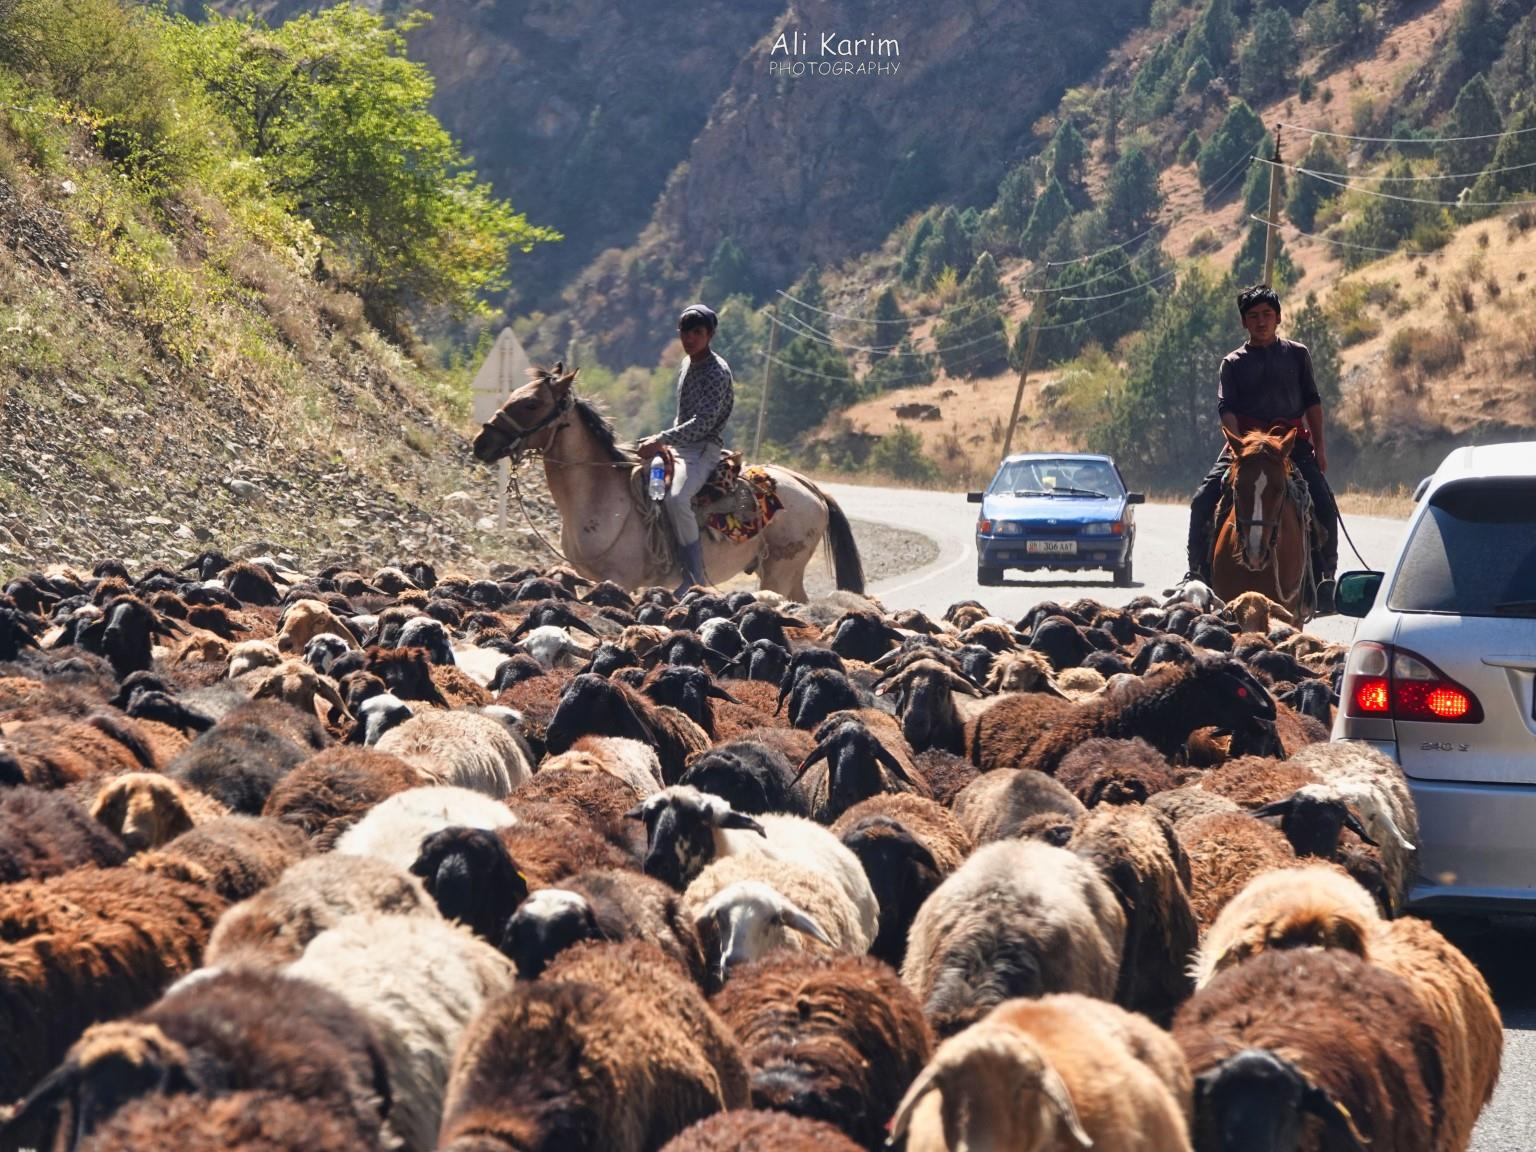 Silk Road 16: More Osh, Kyrgyzstan Sheep traffic jams